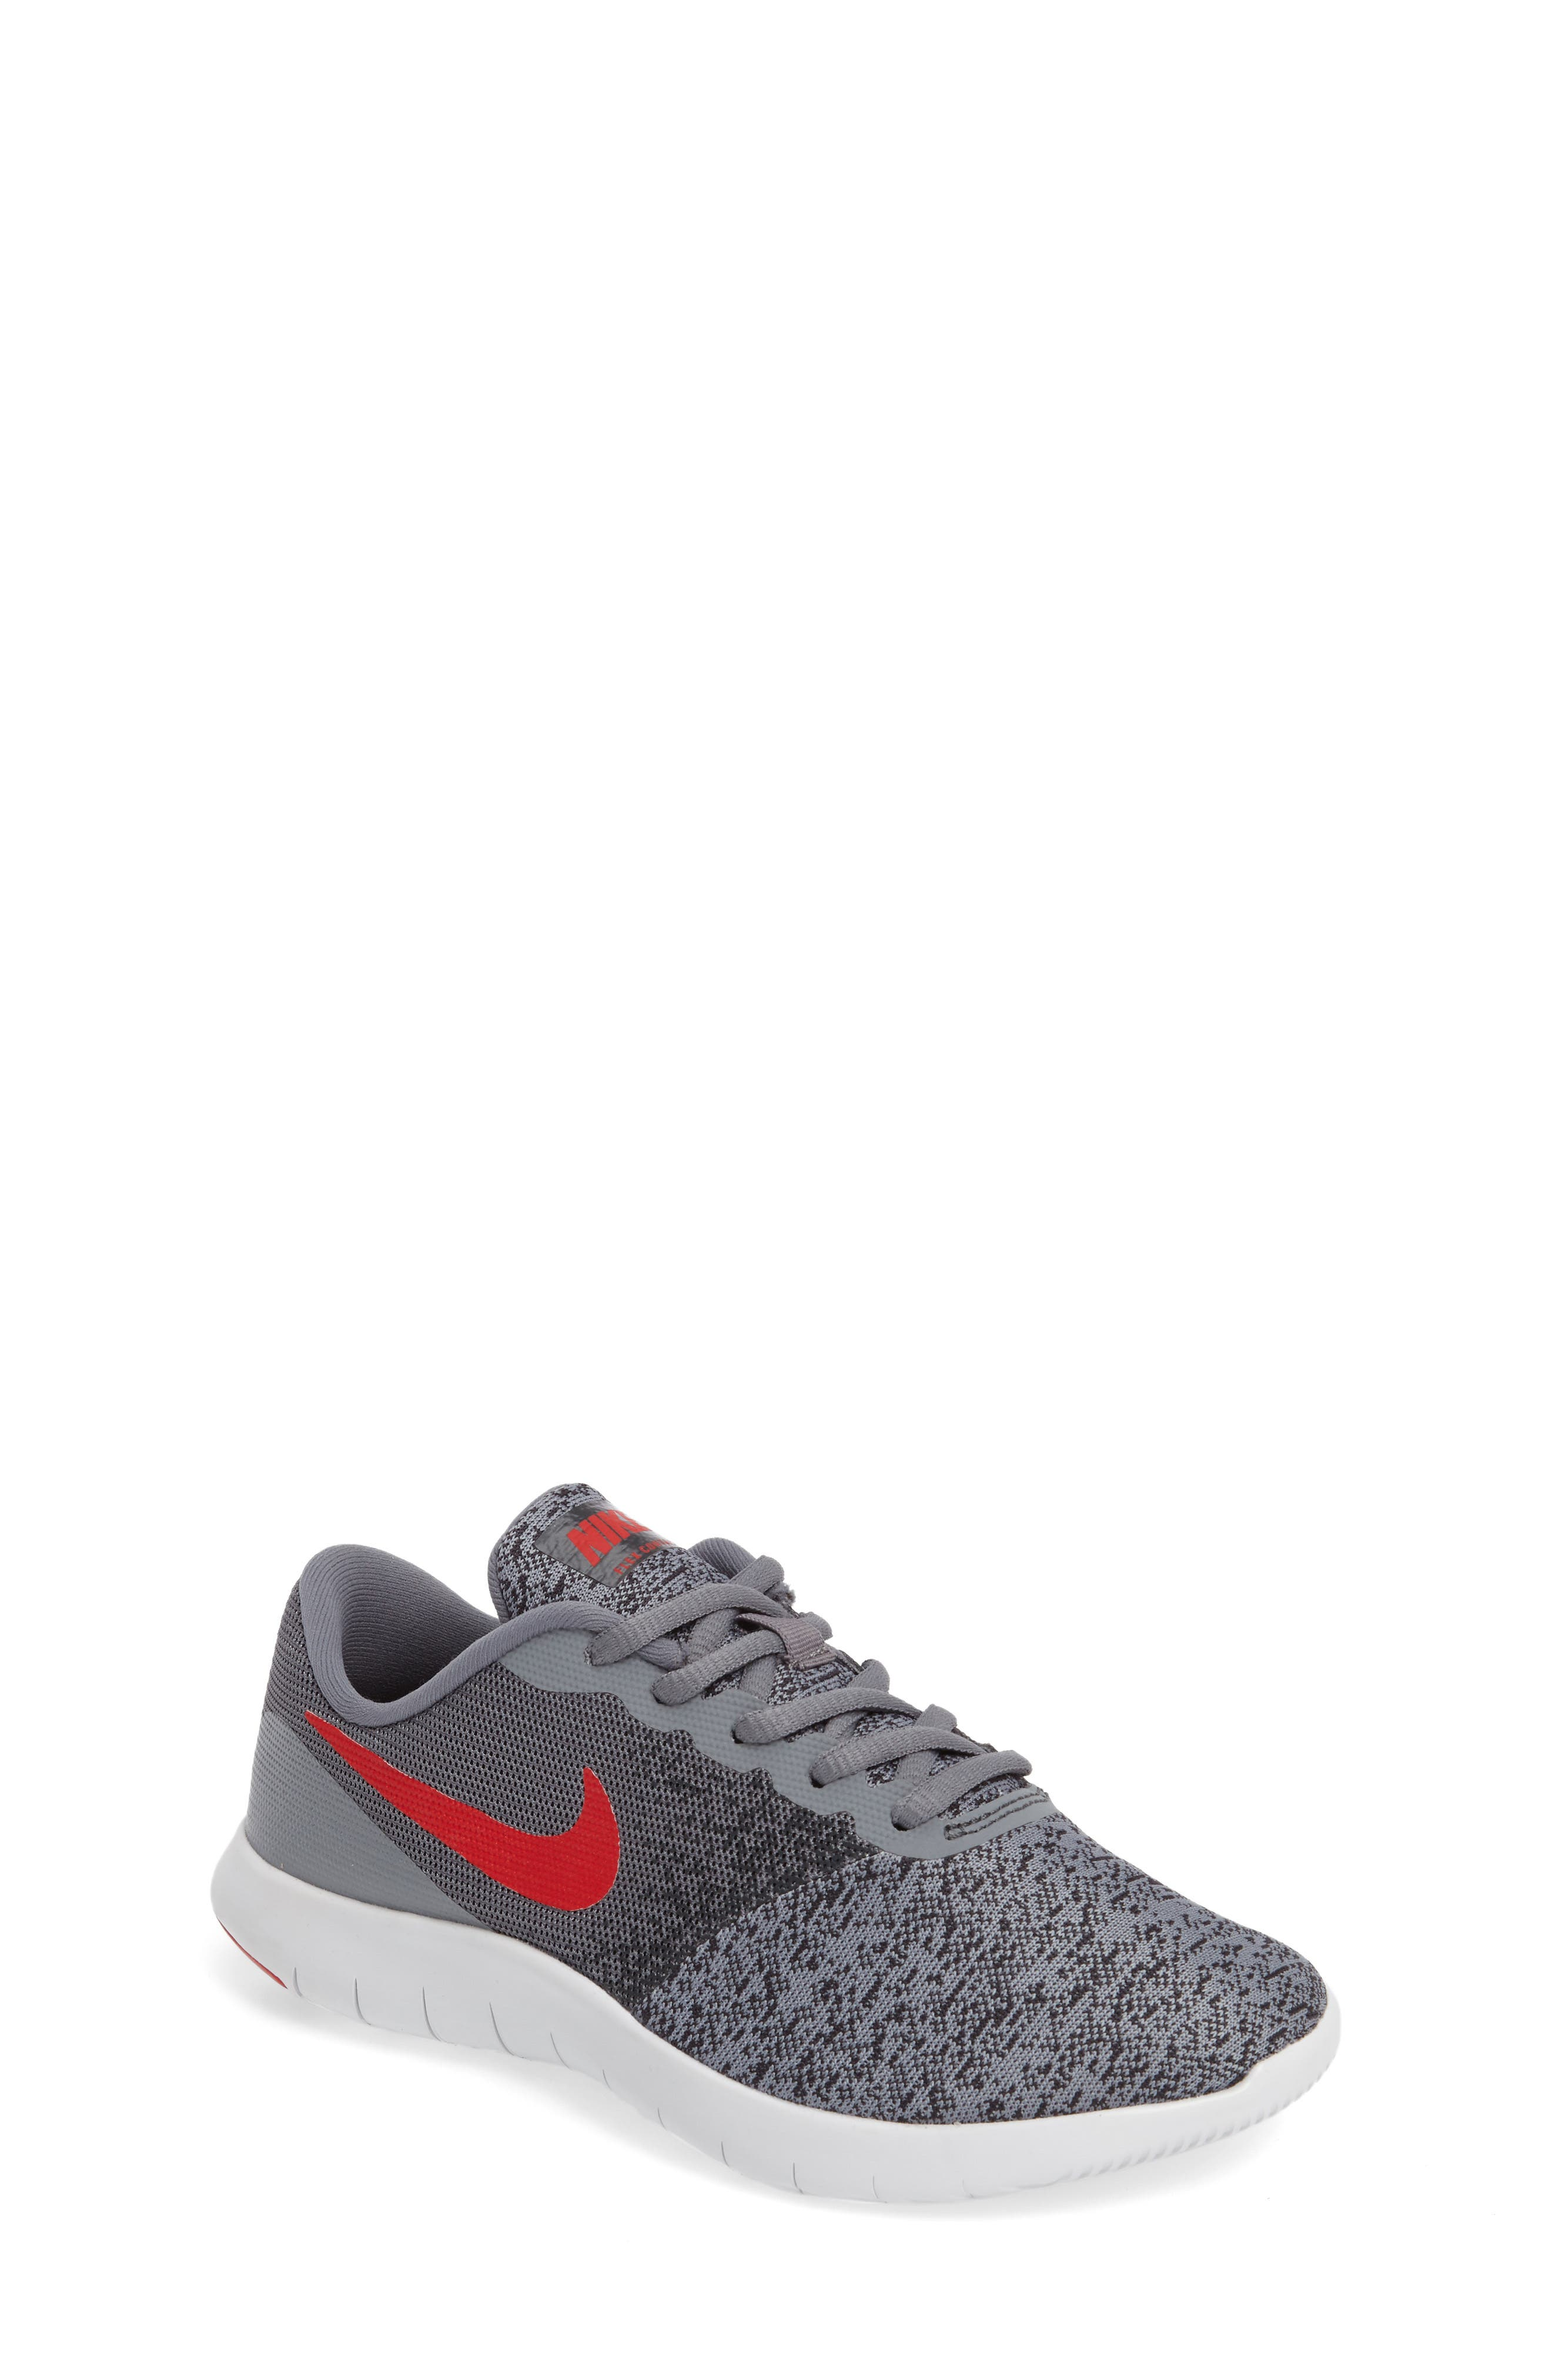 Nike Flex Contact Running Shoe (Big Kid) (Regular Retail Price: $65.00)